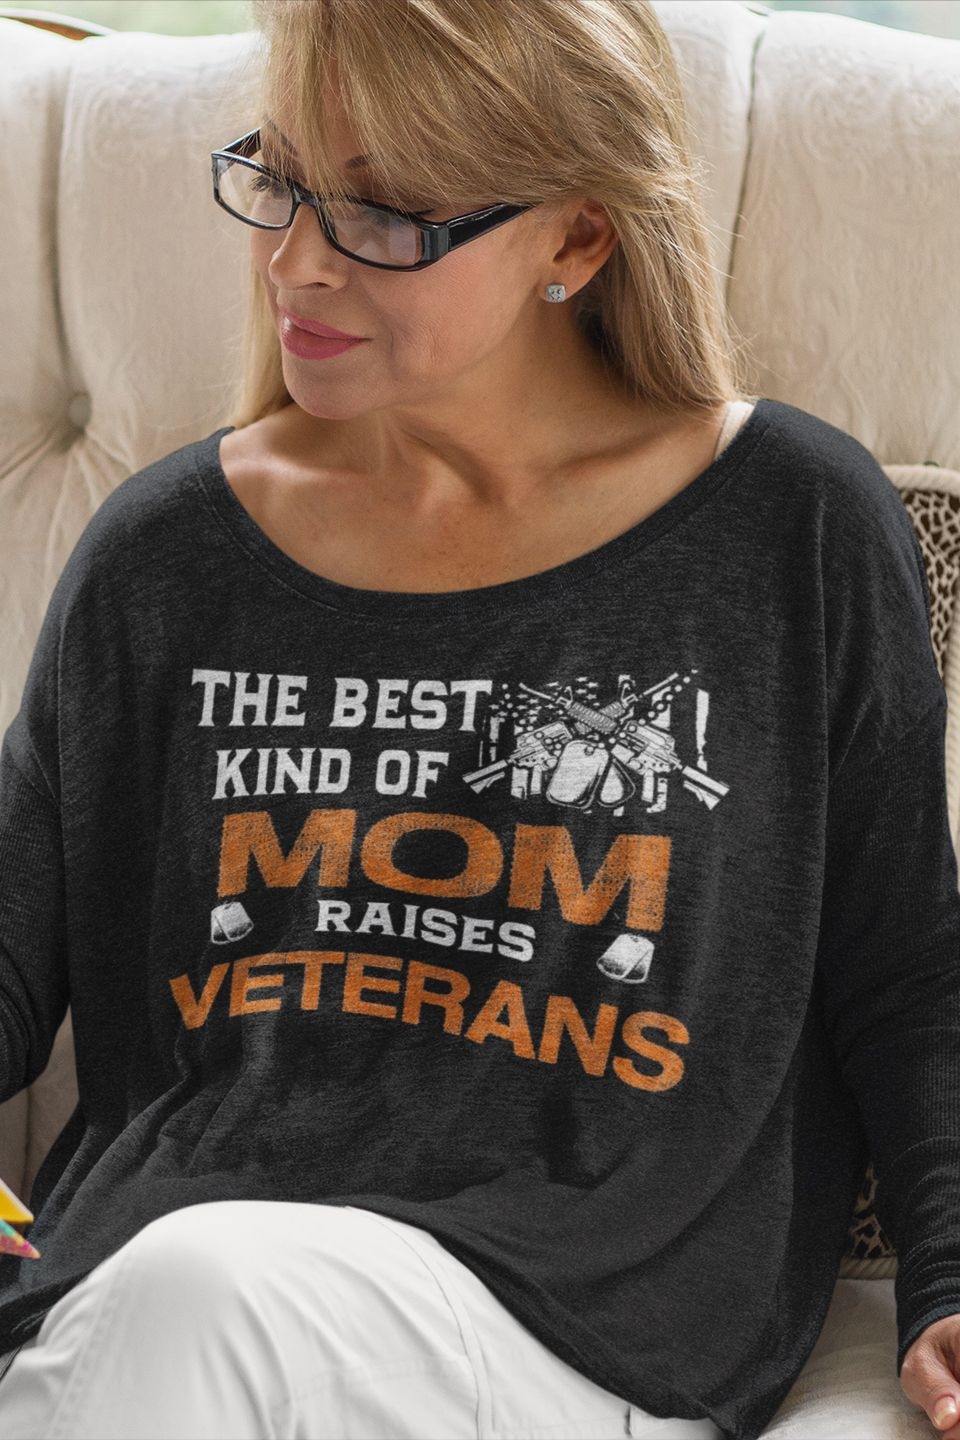 reputable site 62646 a3d52 The Best Kind Of Mom Raises Veterans | US Veteran Gifts ...